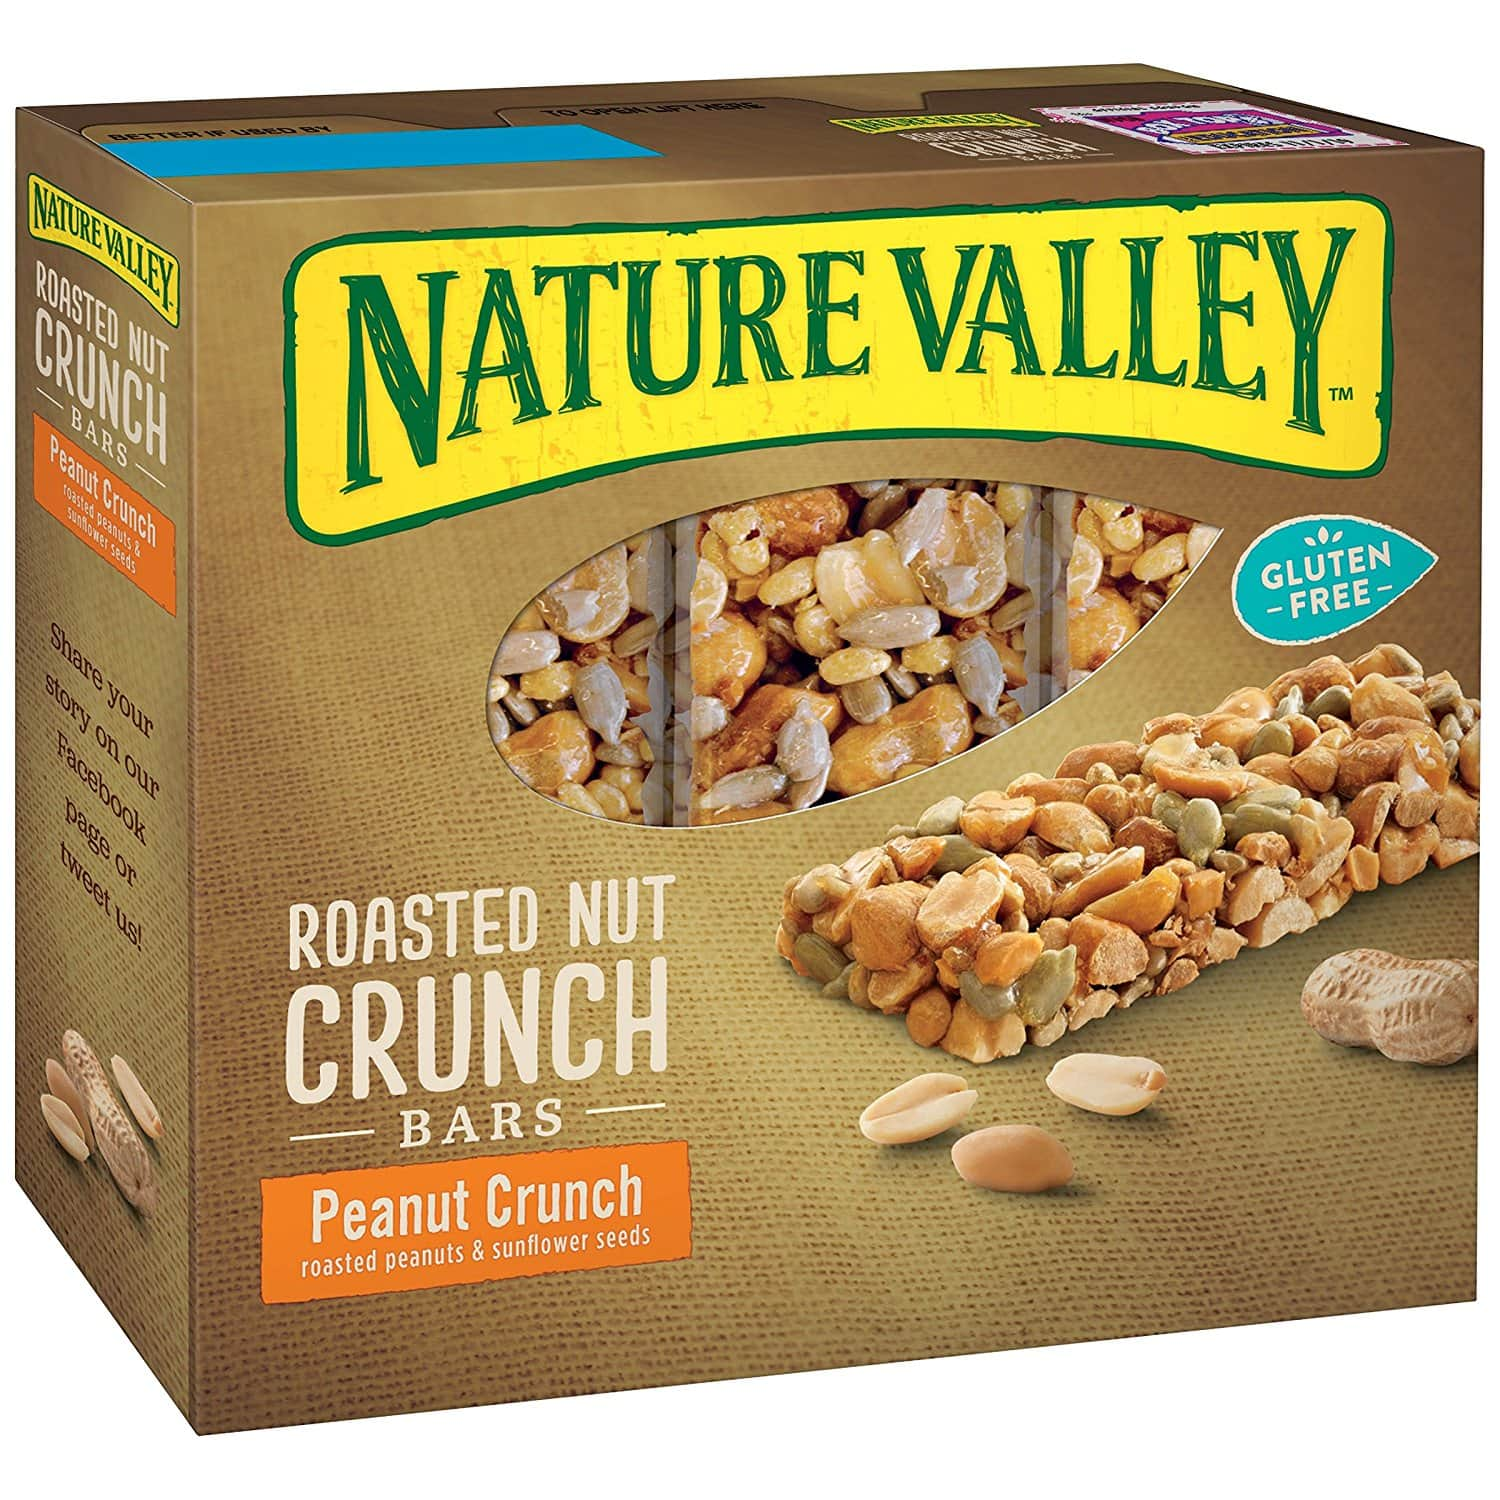 Nature Valley Roasted Nut Crunch, 6 bars, 7.44 Ounce, $1.90 Free Shipping, S&S